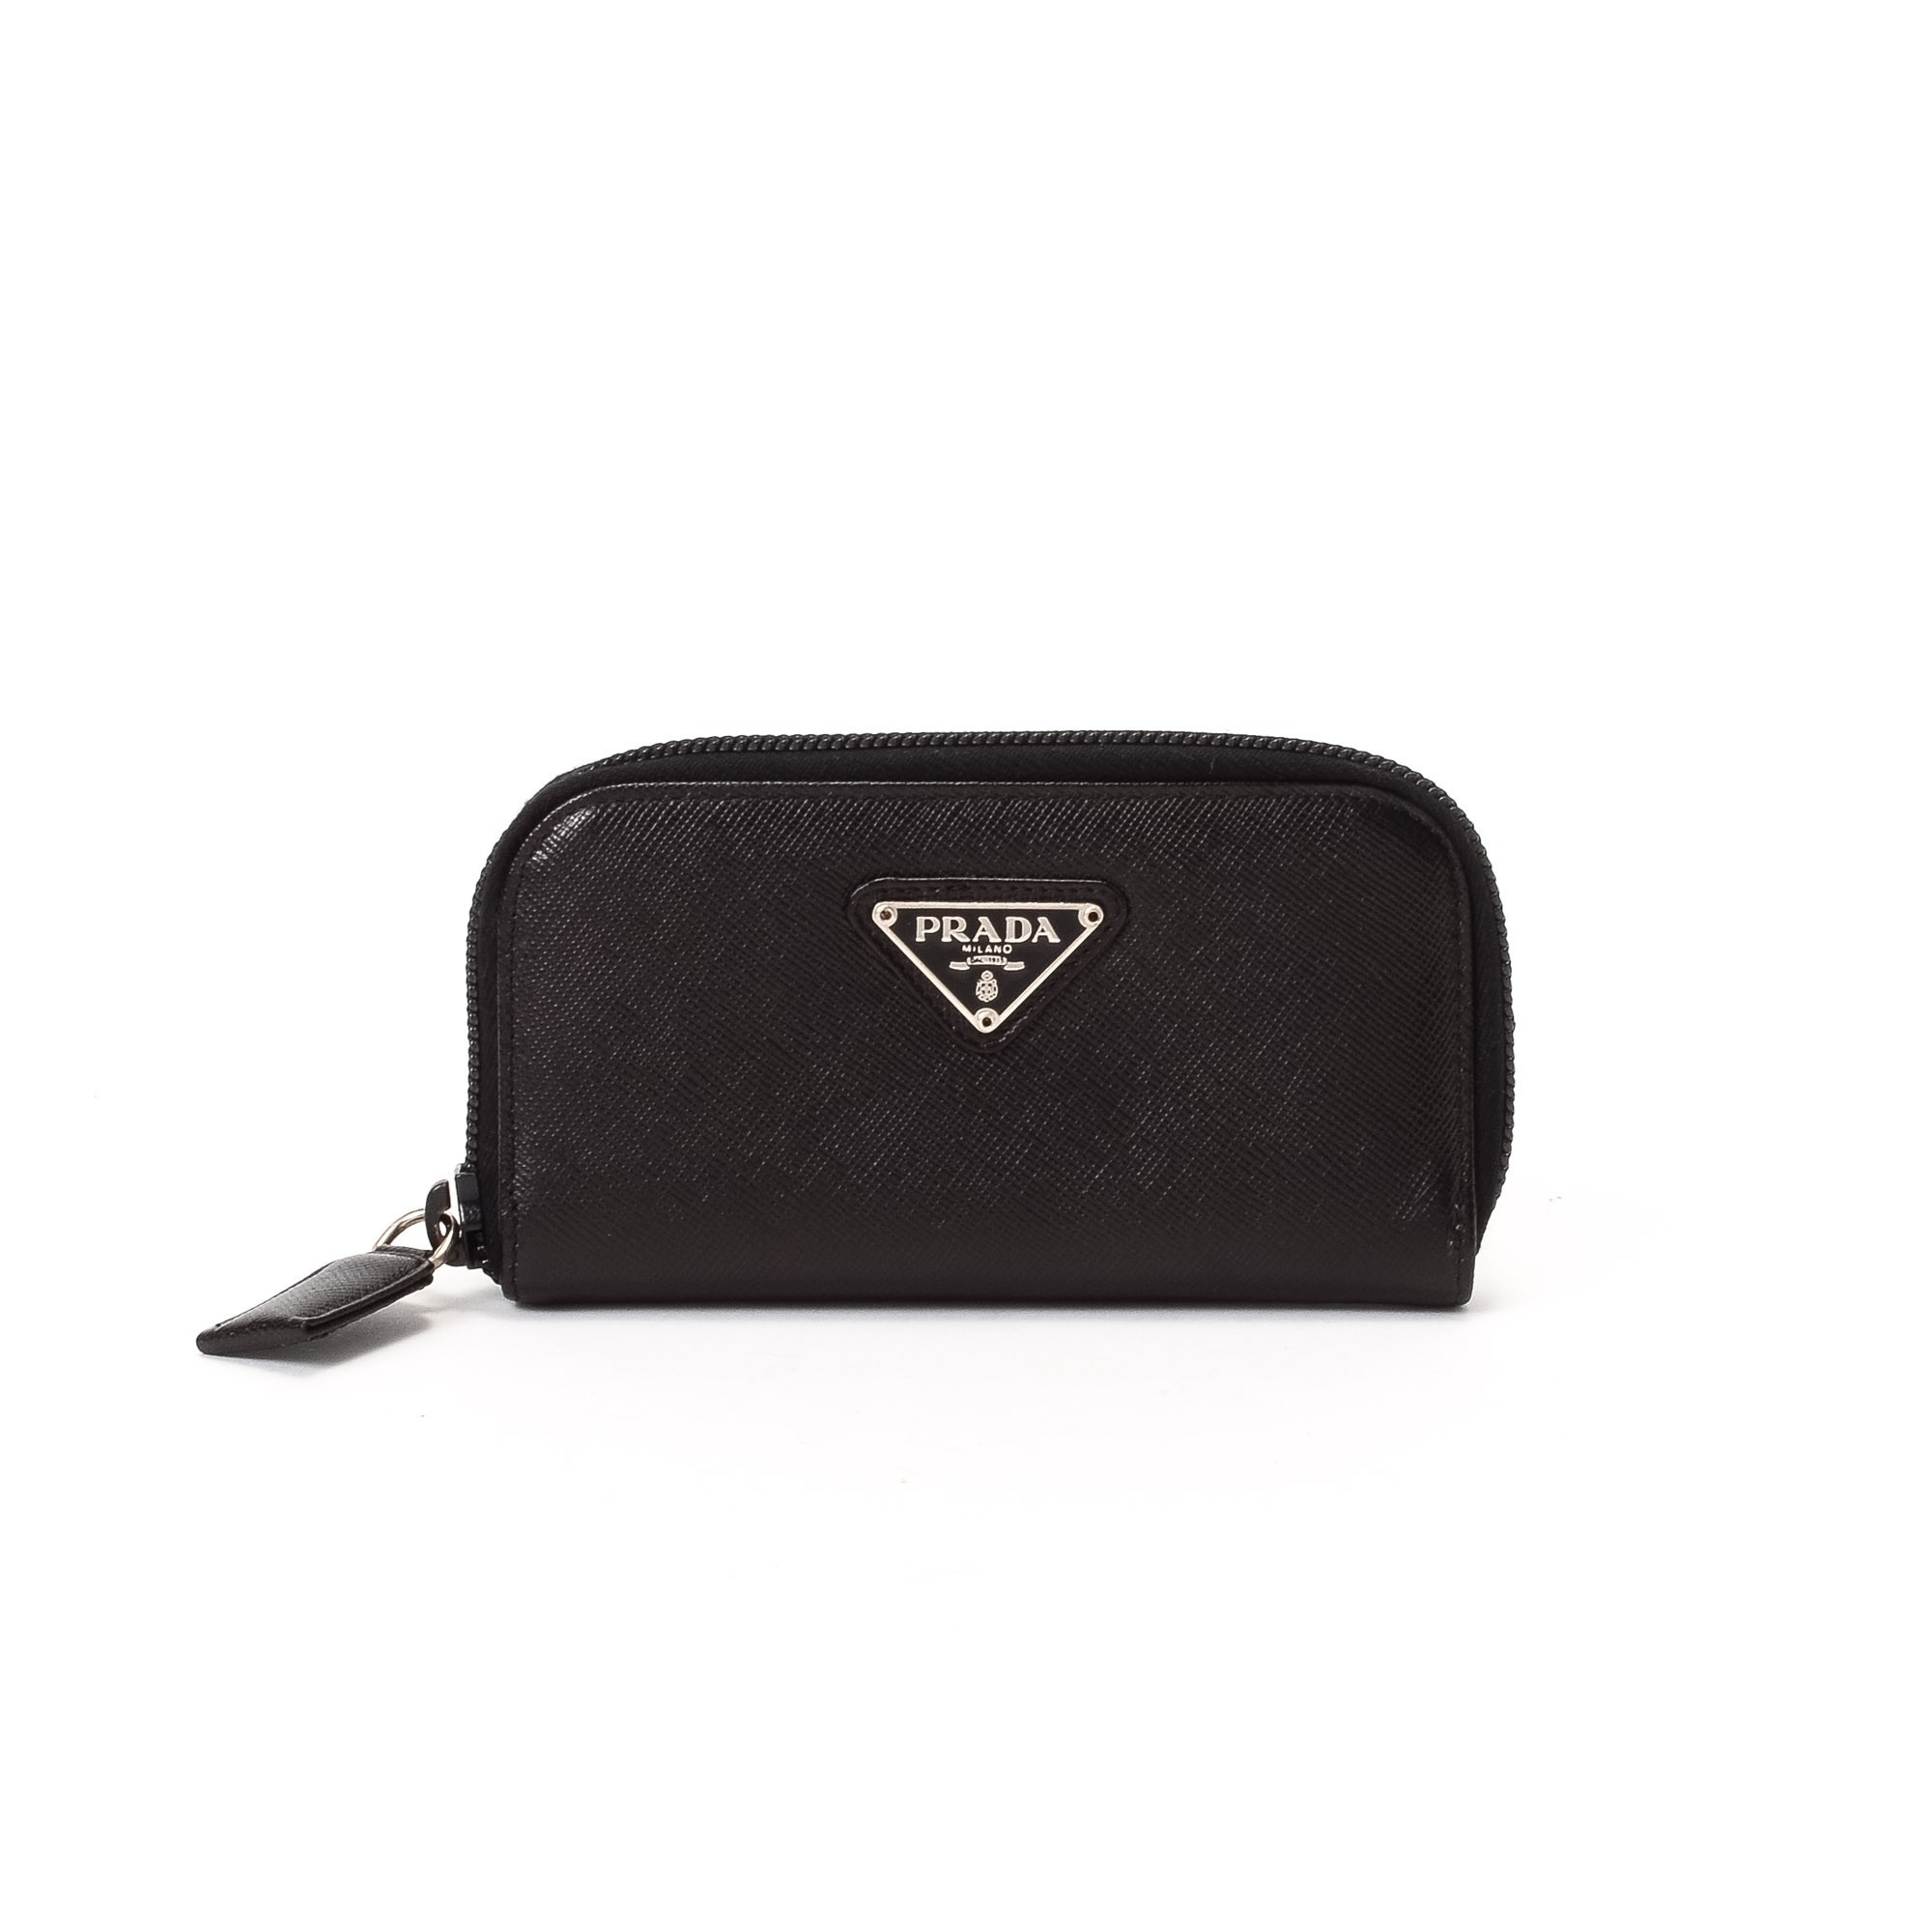 Prada Key Holder Saffiano Black Calf Other Small Leather Good ...